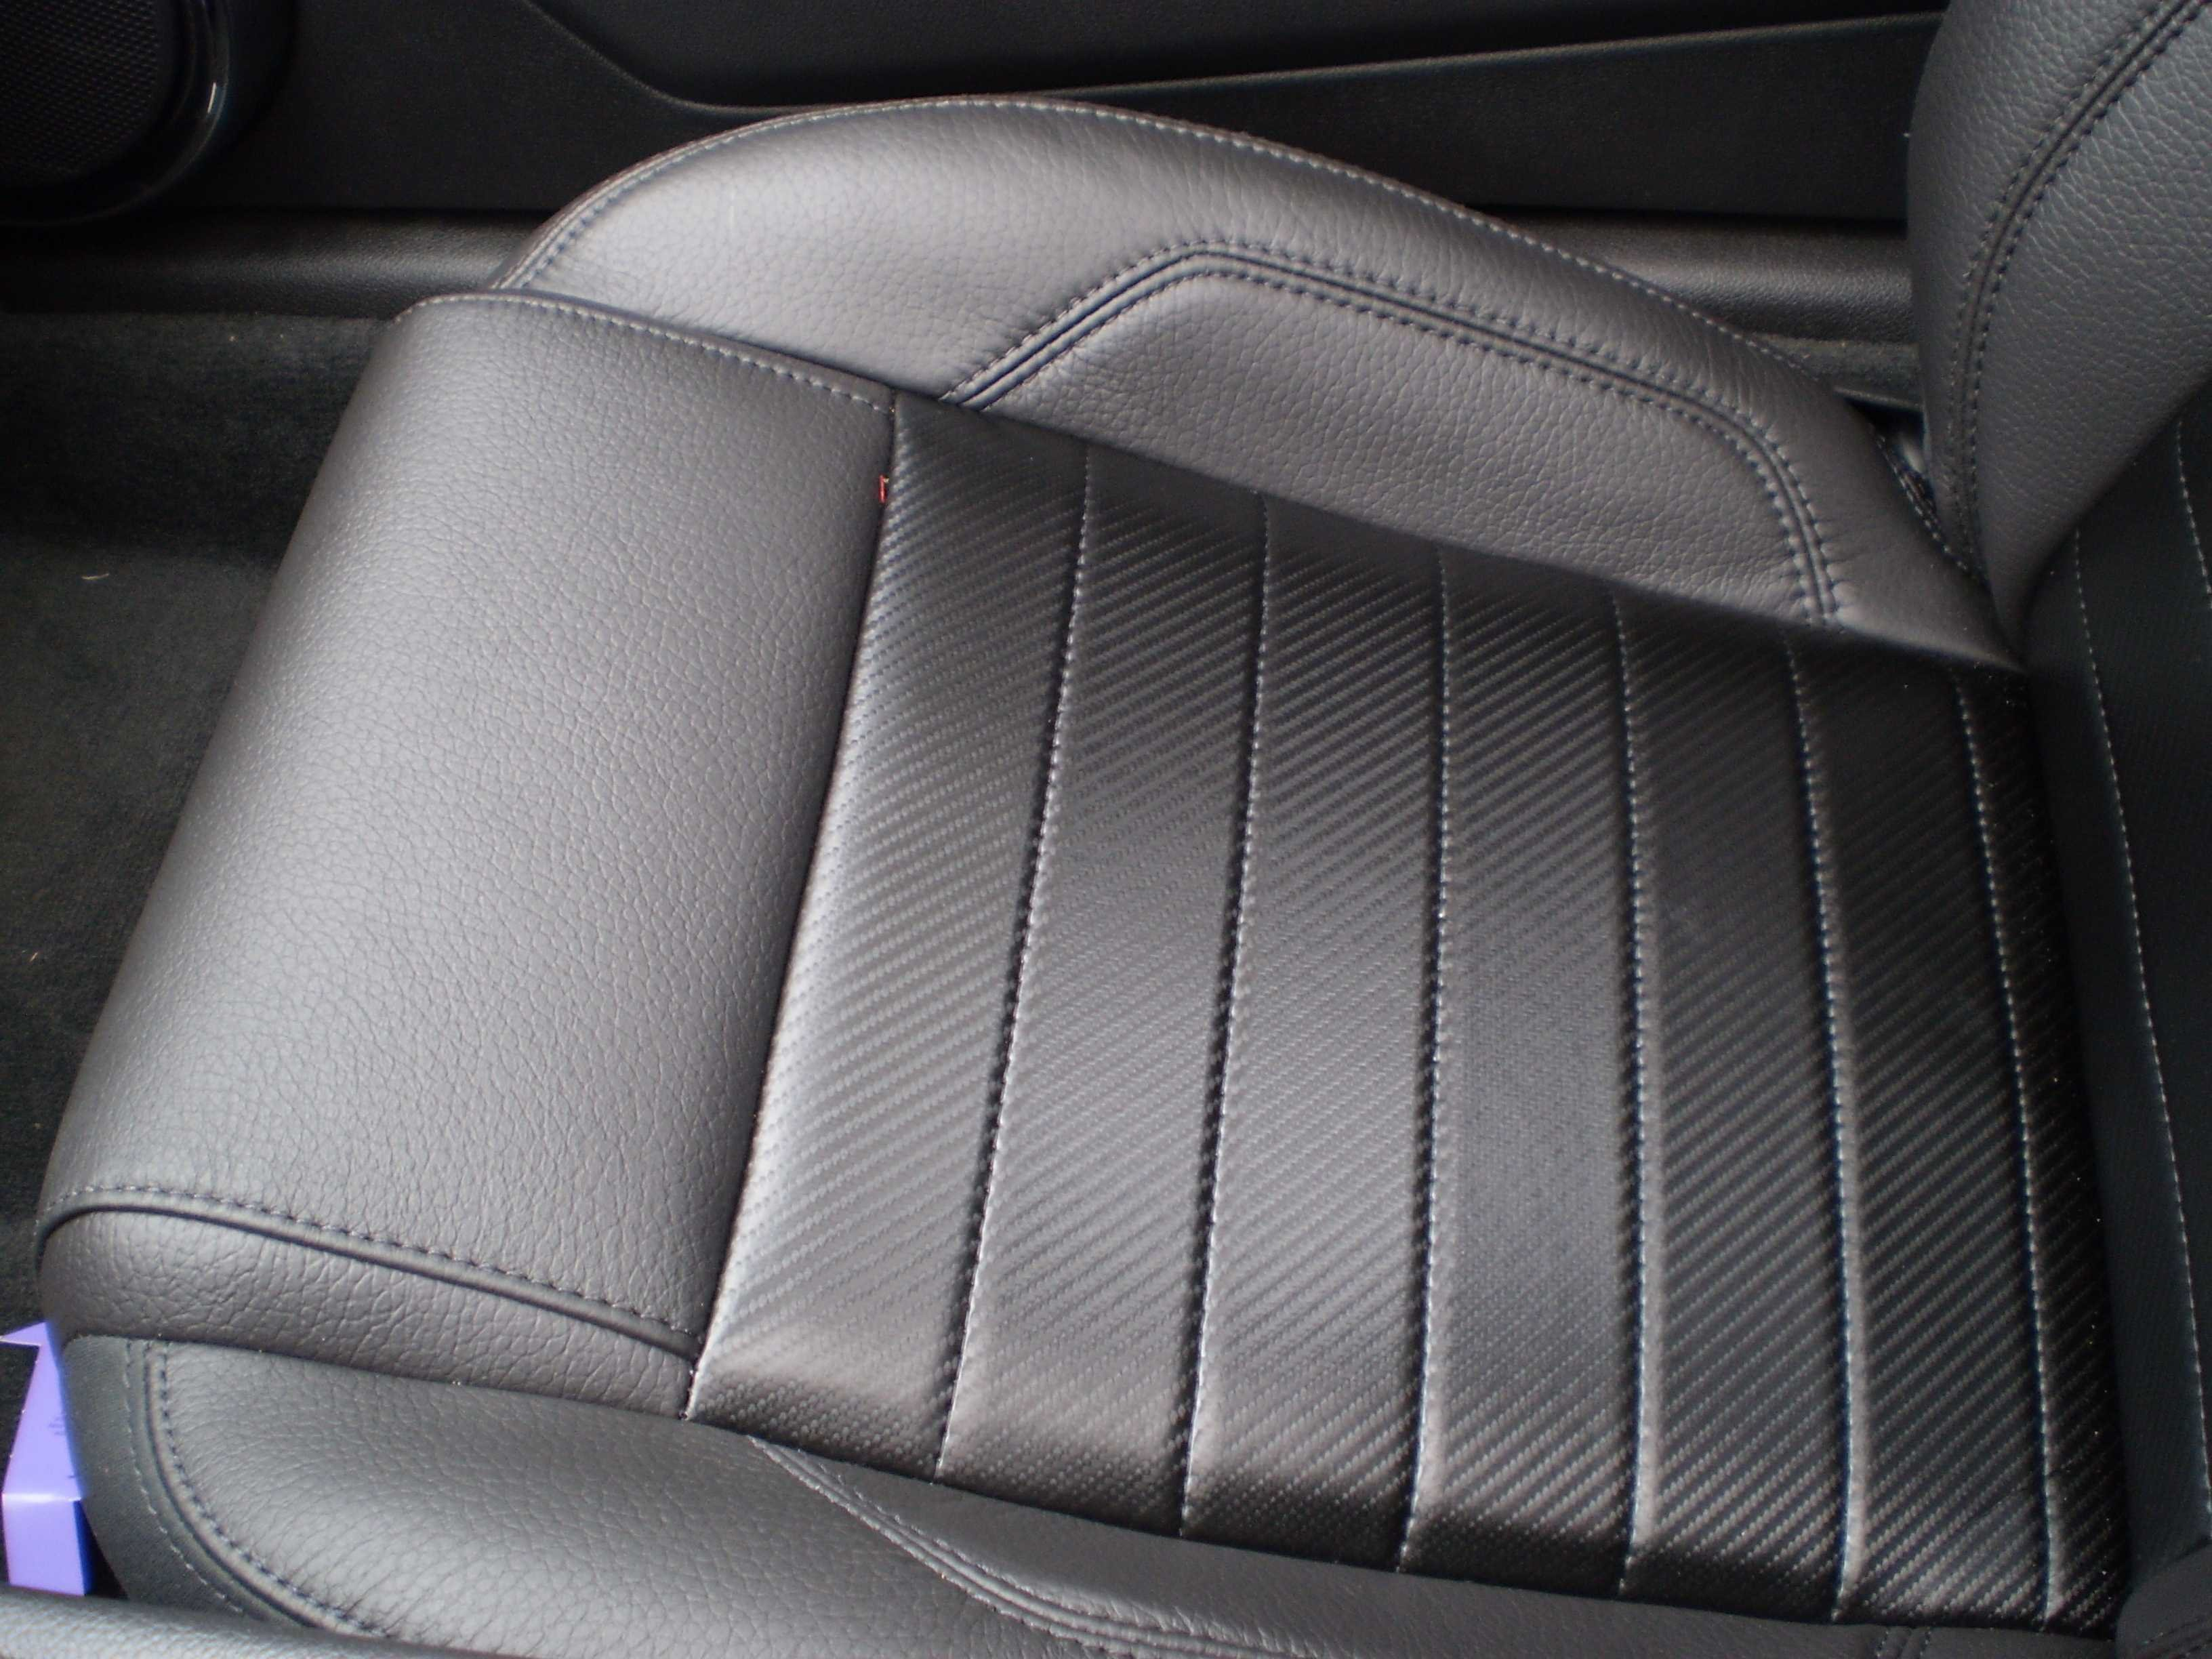 2010 Mustang Leather Seats Ford Mustang Forum